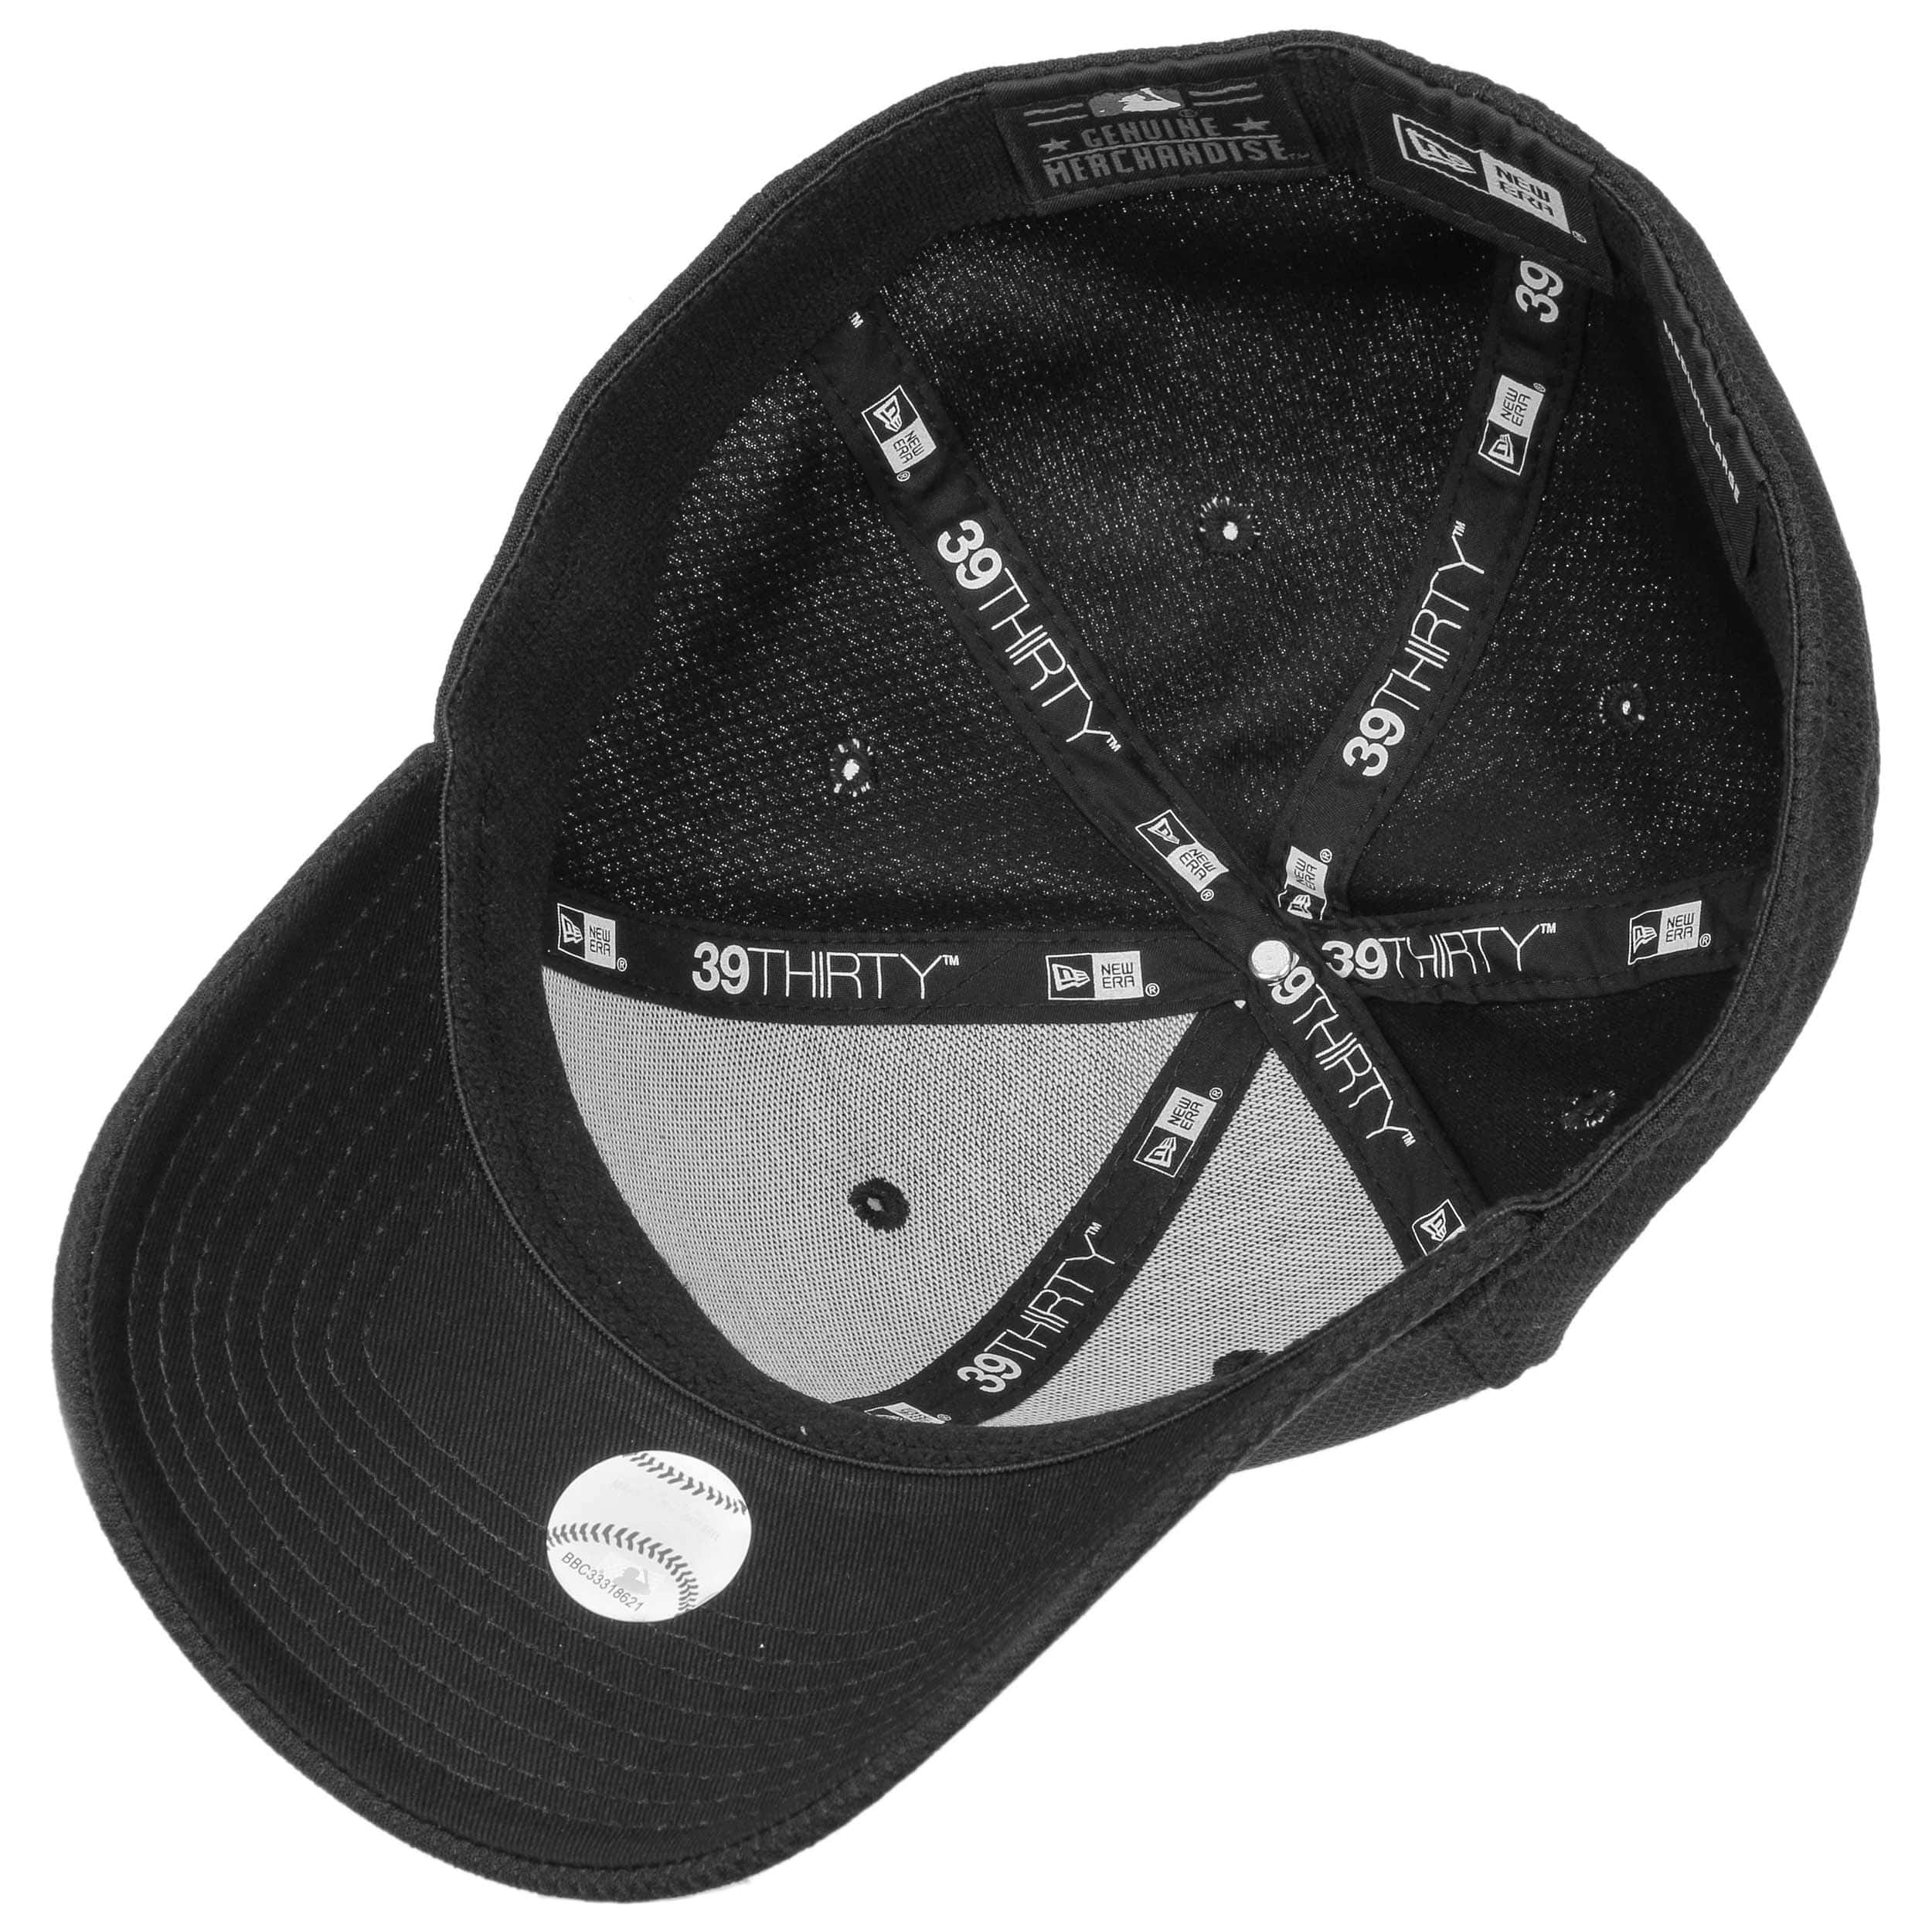 fe6bf75e0a0 ... 39Thirty Diamond LA Dodgers Cap by New Era - black 2 ...